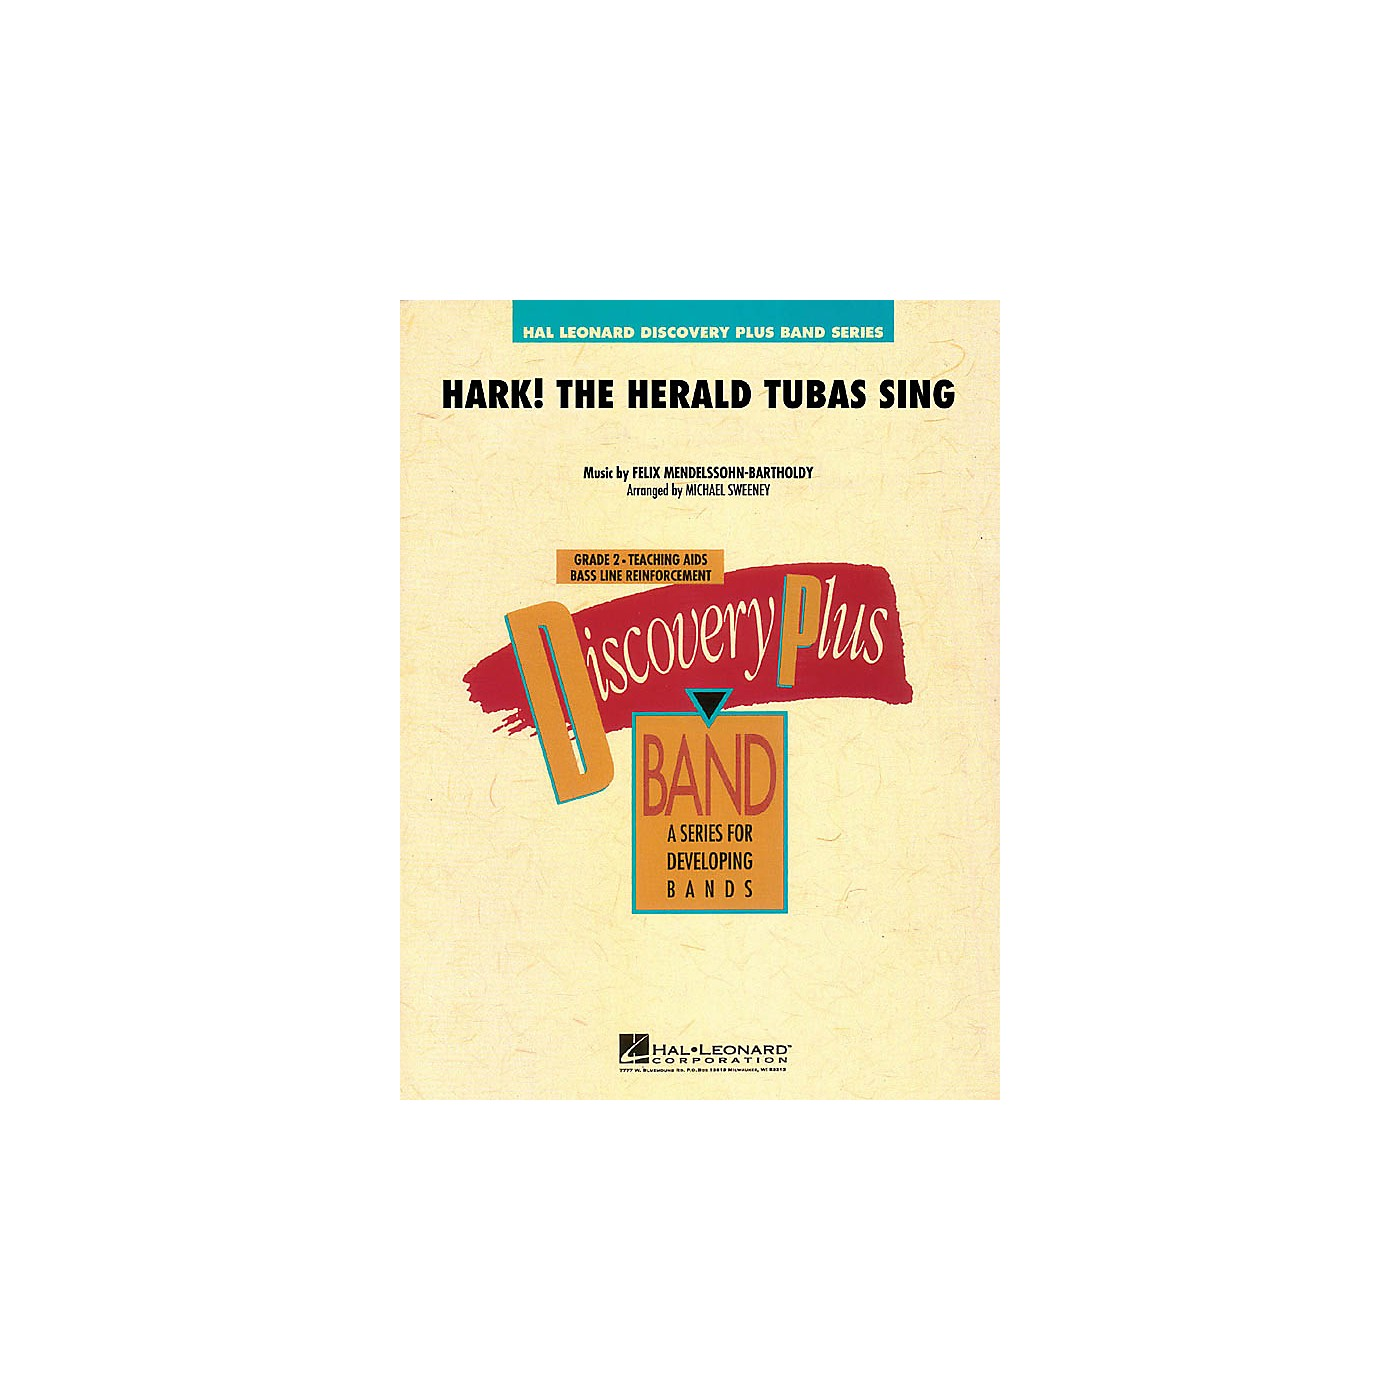 Hal Leonard Hark! The Herald Tubas Sing - Discovery Plus Band Level 2 arranged by Michael Sweeney thumbnail